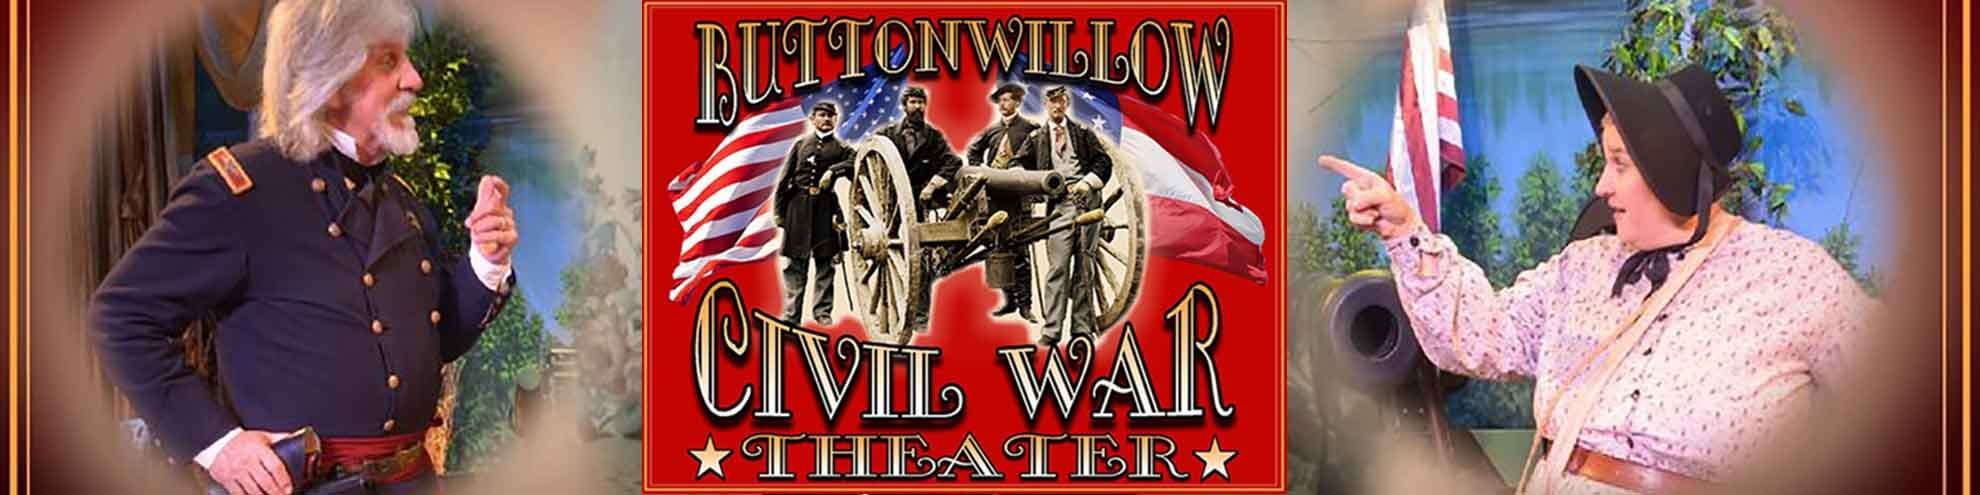 Buttonwillow Civil War Theater Discount Tickets